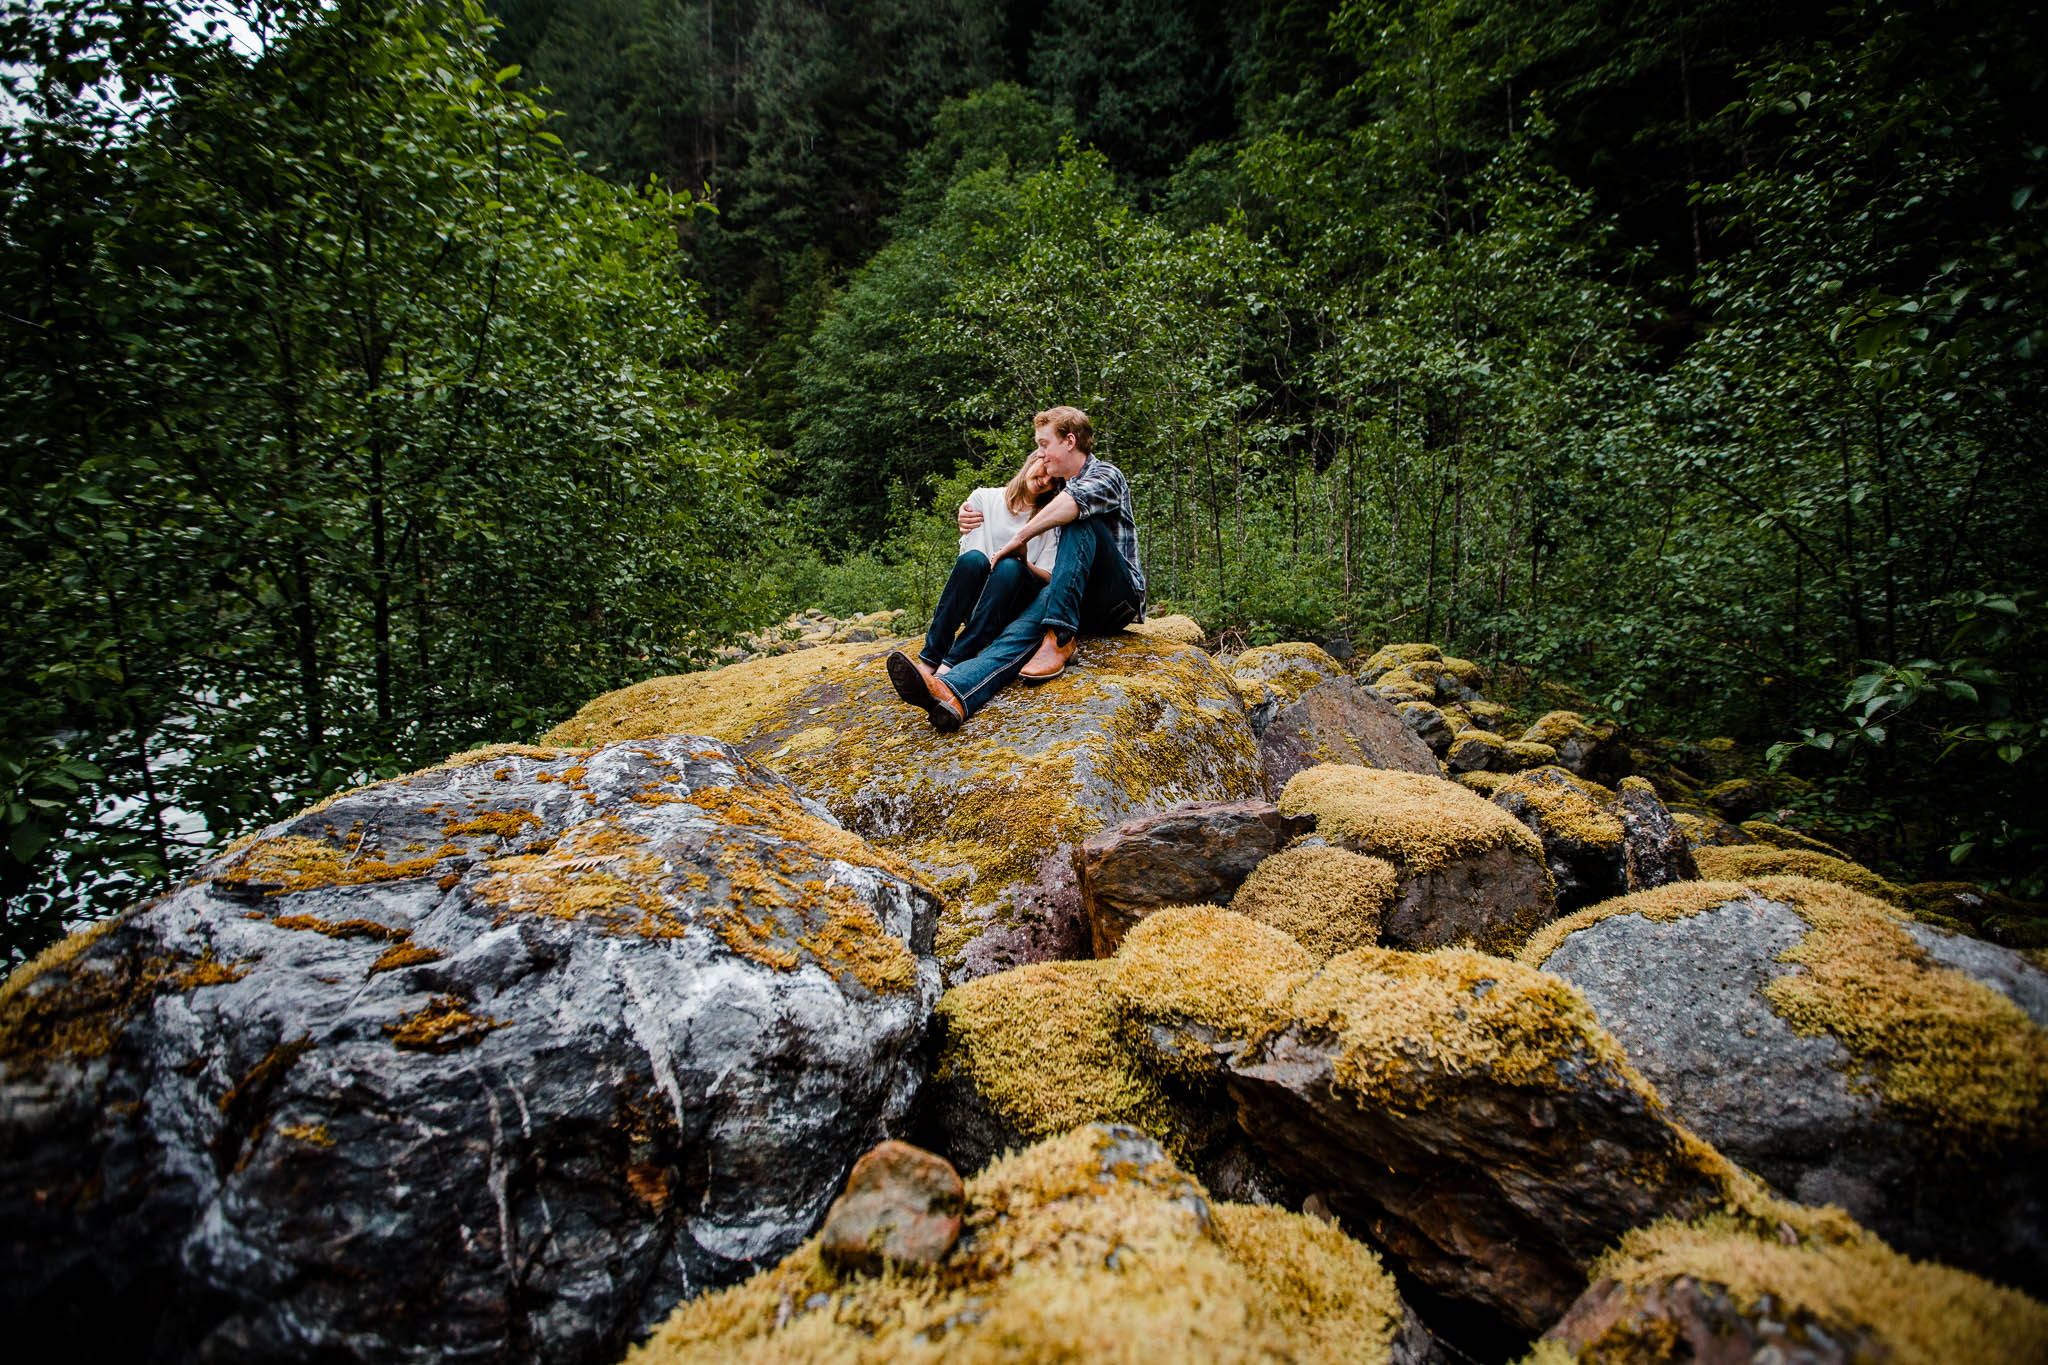 Wide angle photo of couple cuddling on moss covered rock  by   Folley Creek near Folley Lake along Folley Service Road in Chilliwack British Columbia during outdoor engagement photography session in the mountains with Mimsical Photography.    Outdoor adventure photographer based in Langley, British Columbia. Real fun engagement photos for outdoor enthusiasts in the lower mainland. romantic pictures of couple